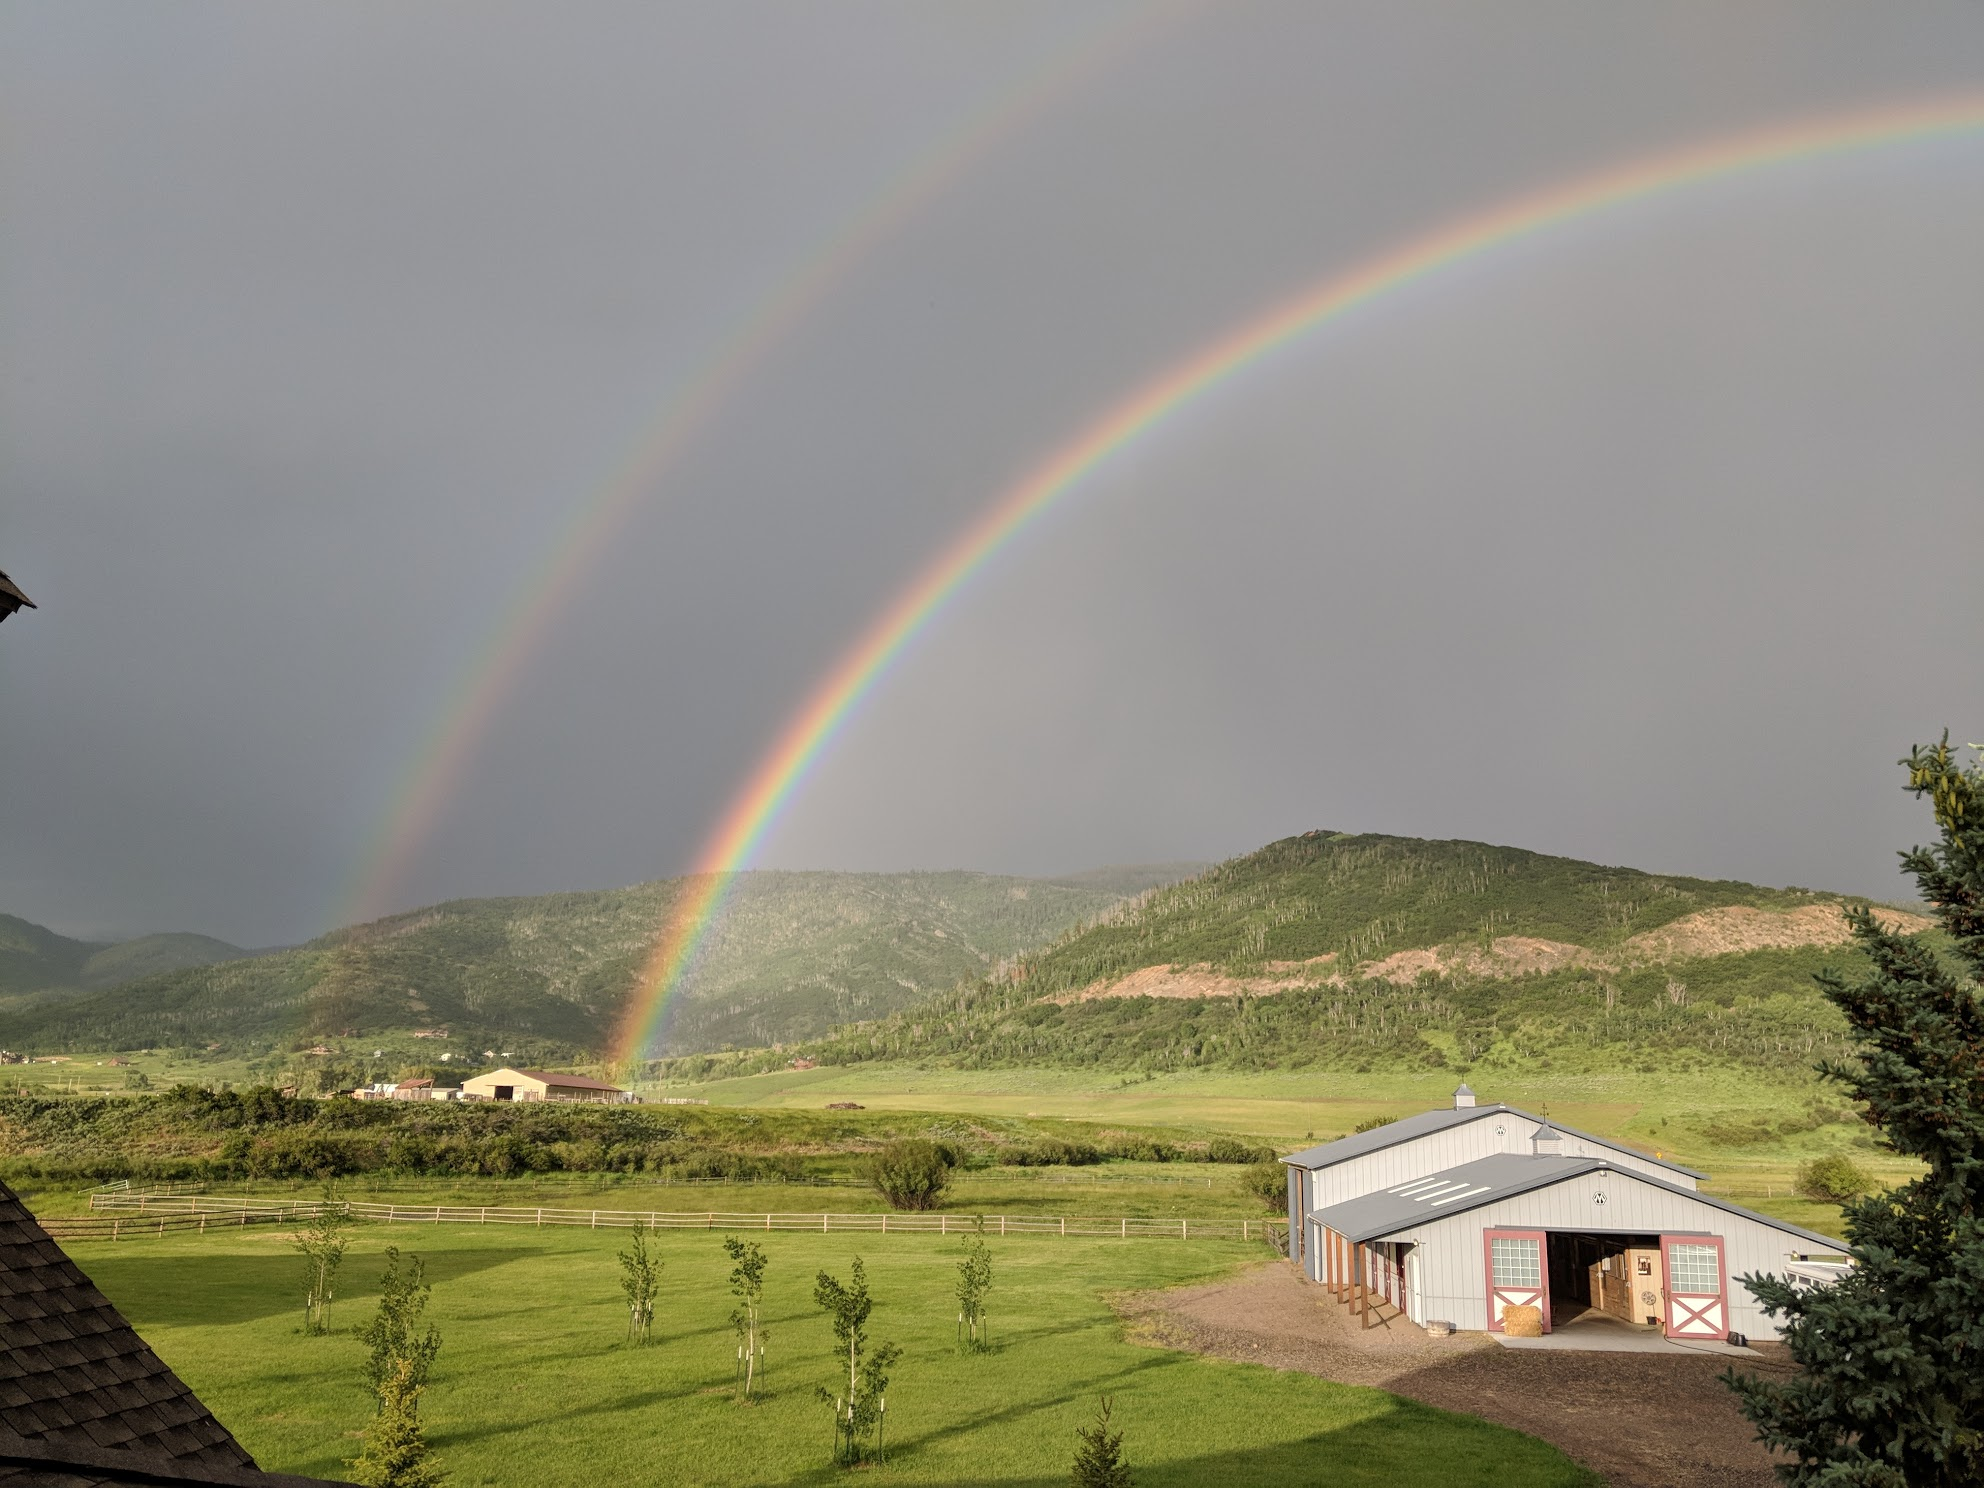 Rainbow over South Valley